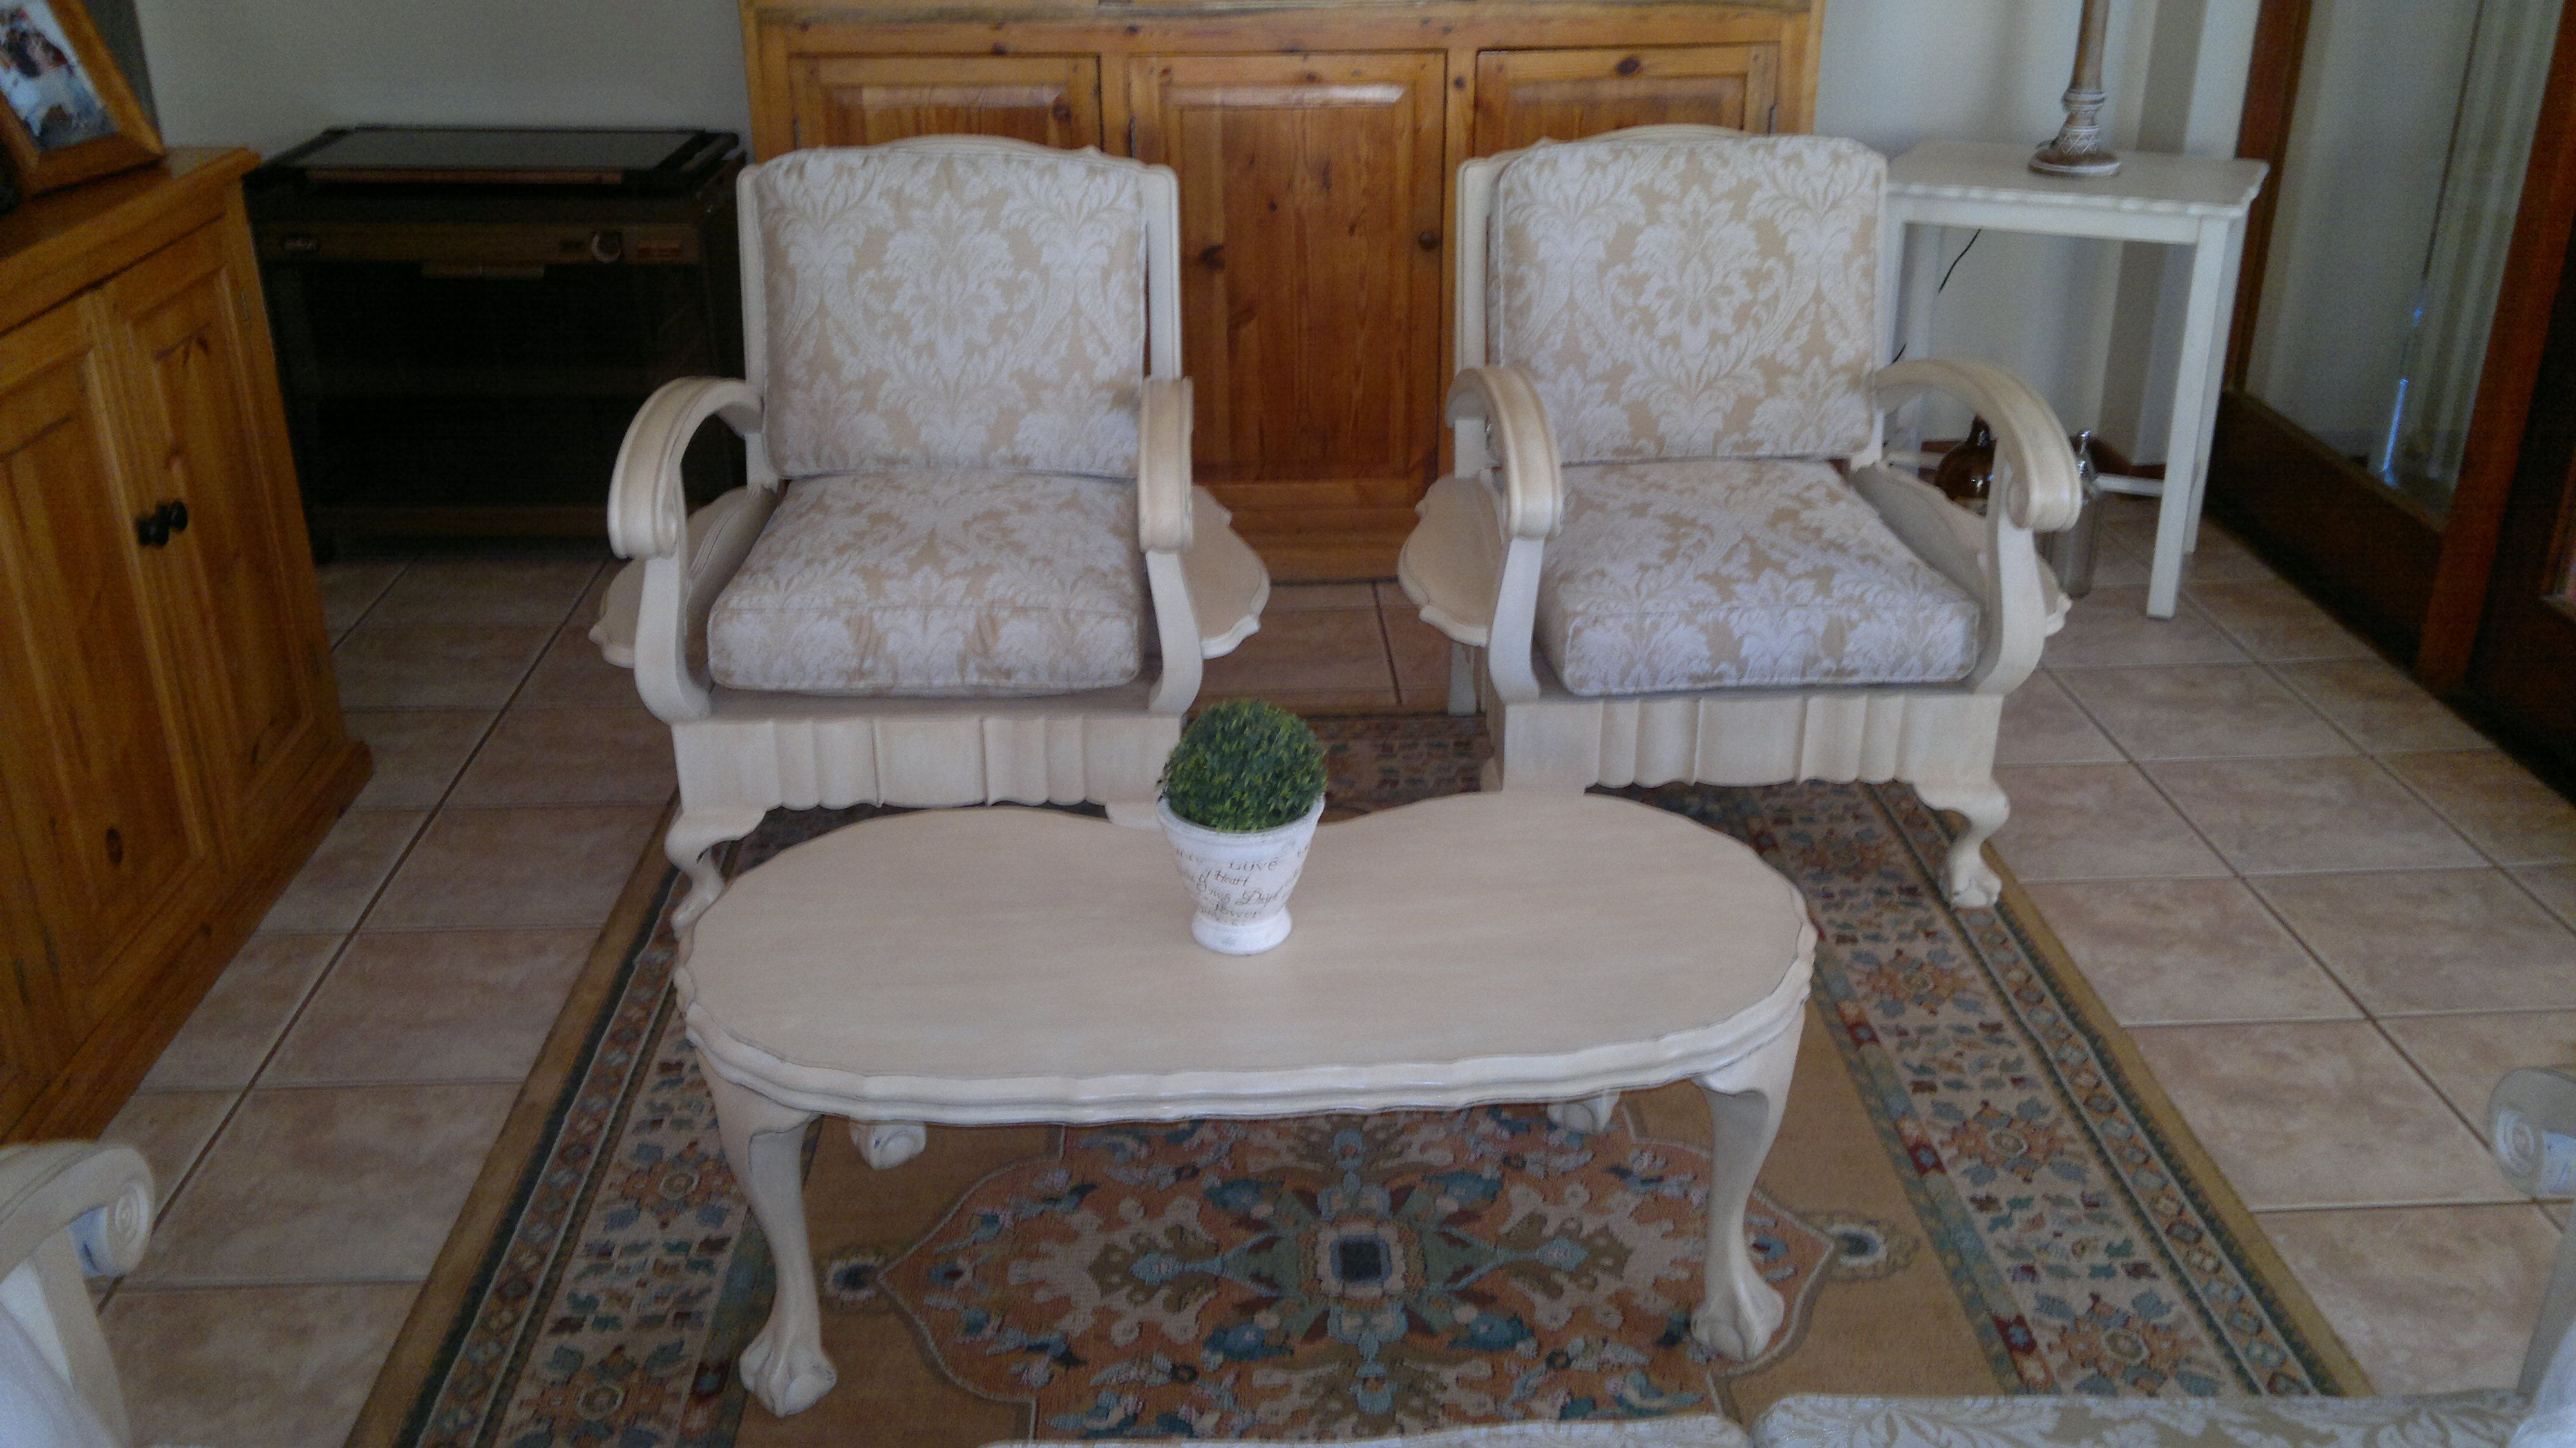 Old Imbuia Ball And Claw Furniture Given A Face Lift With